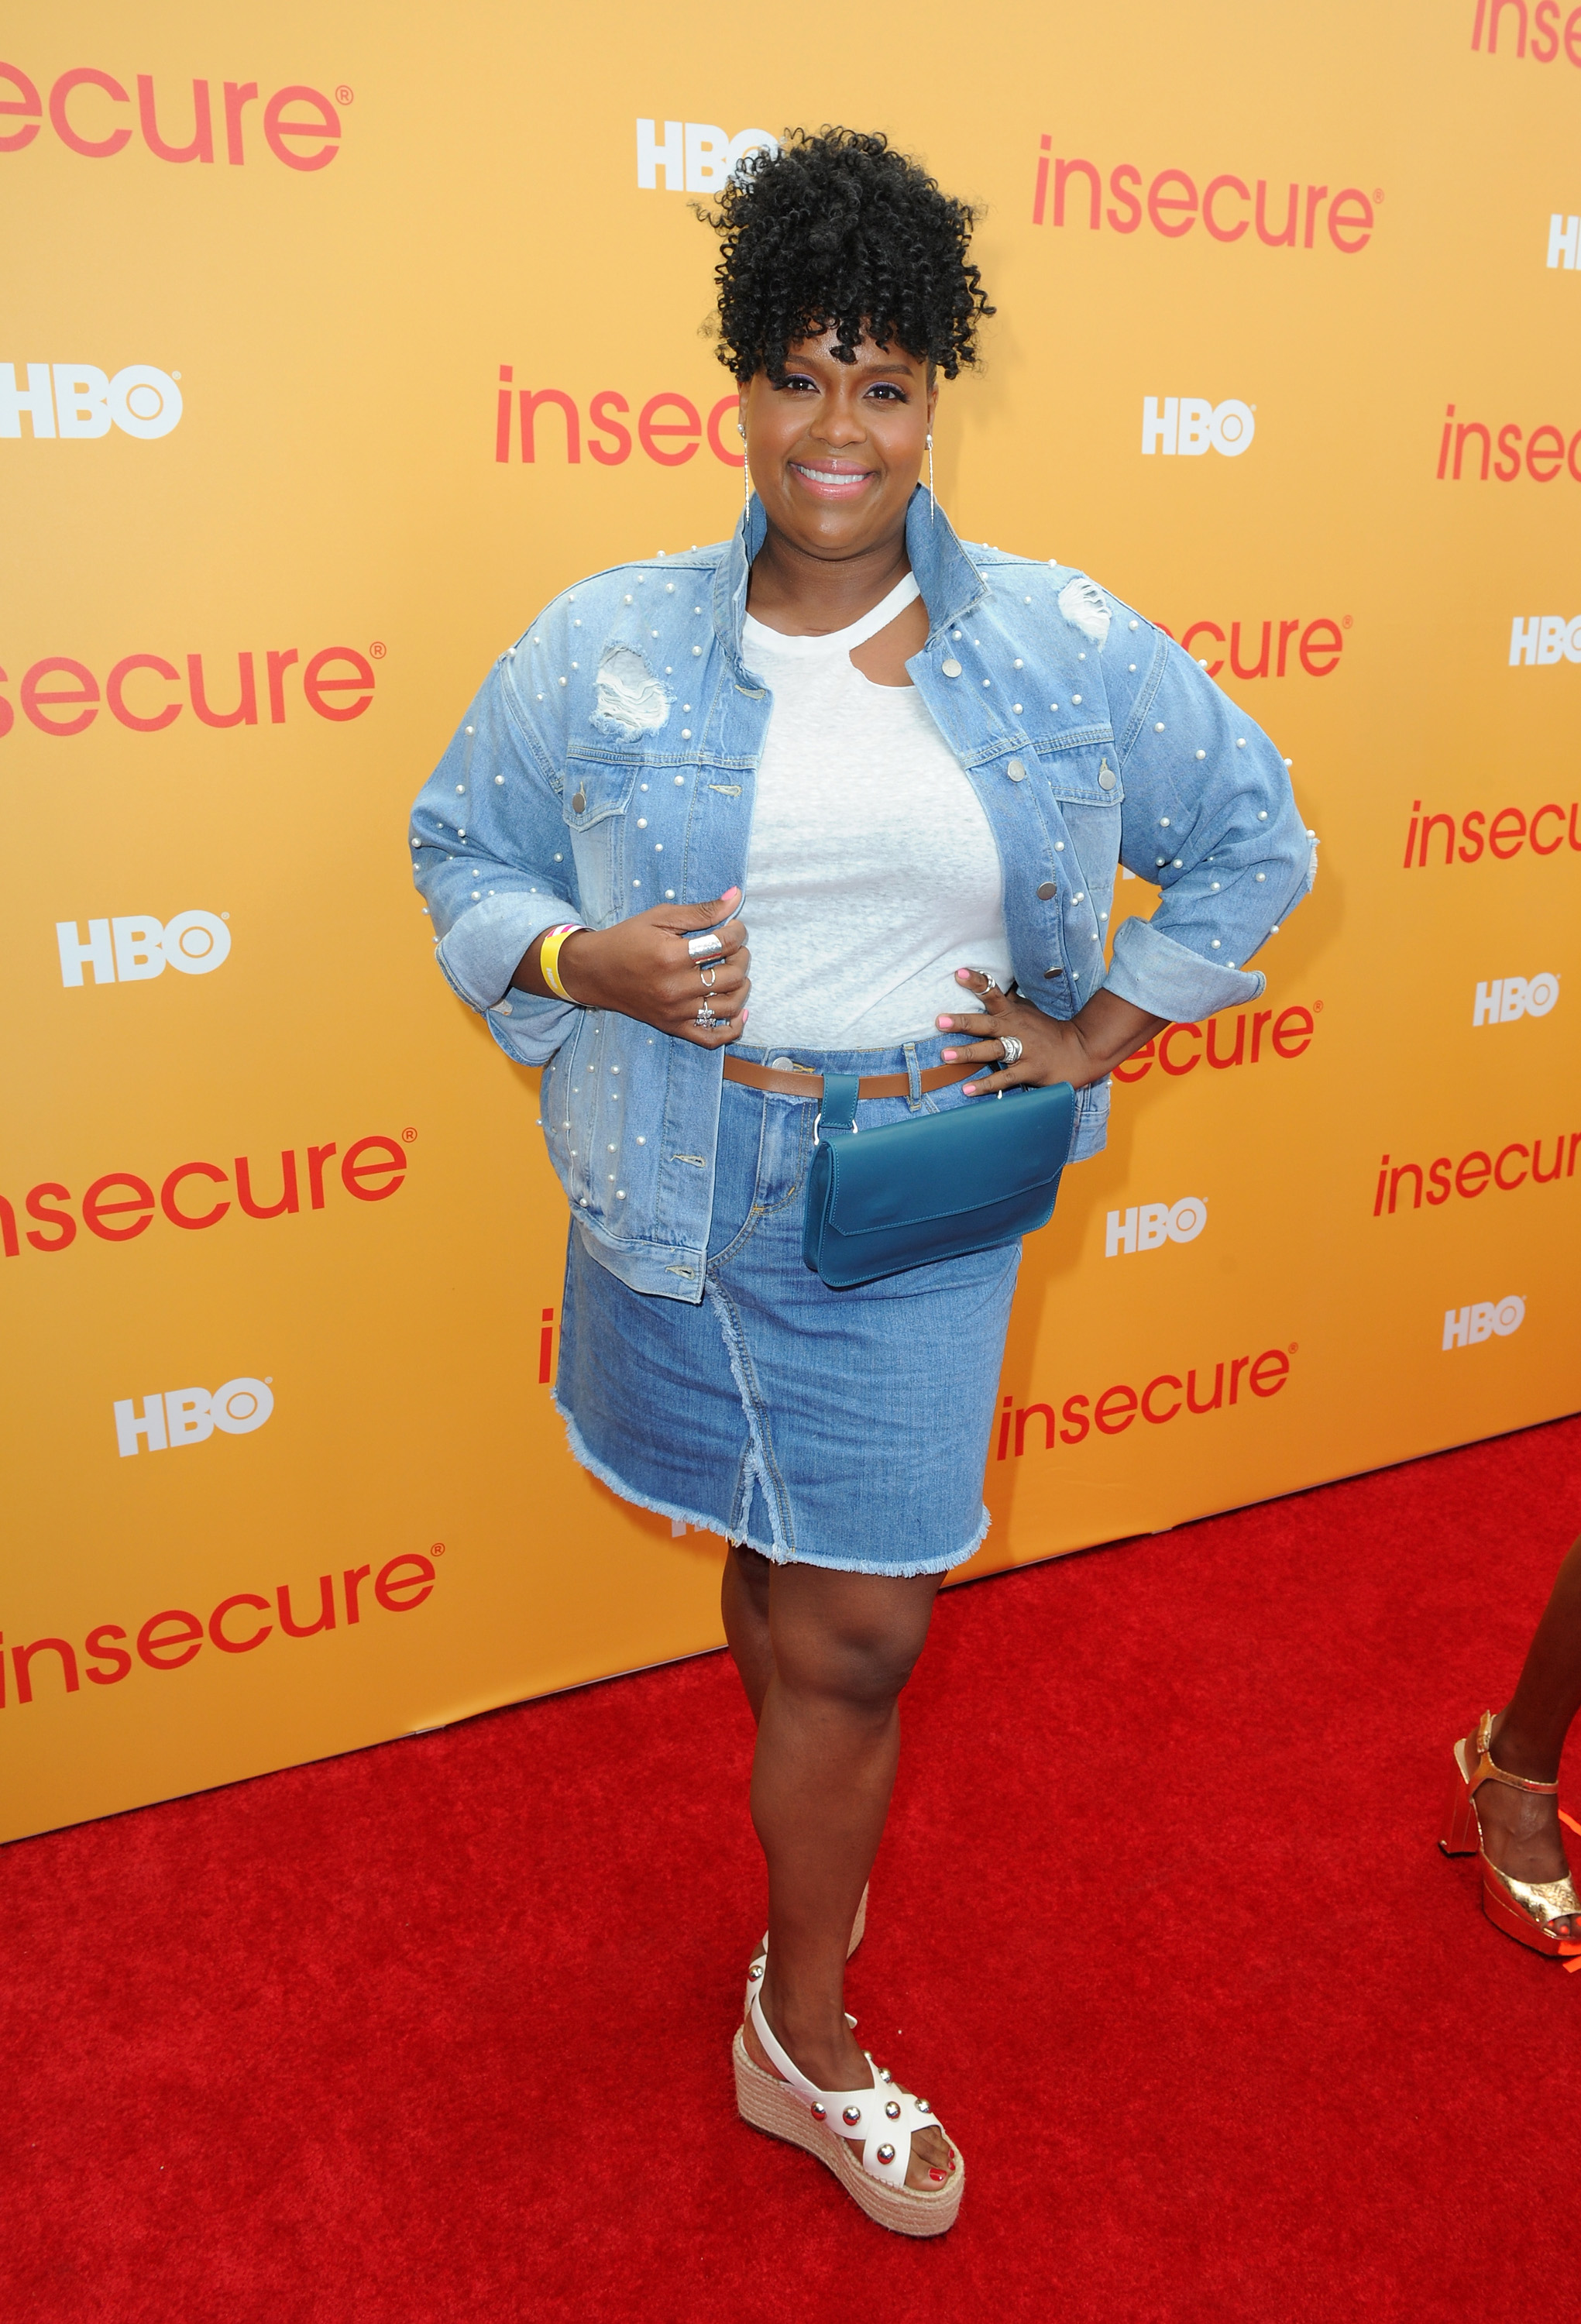 Insecure Fest